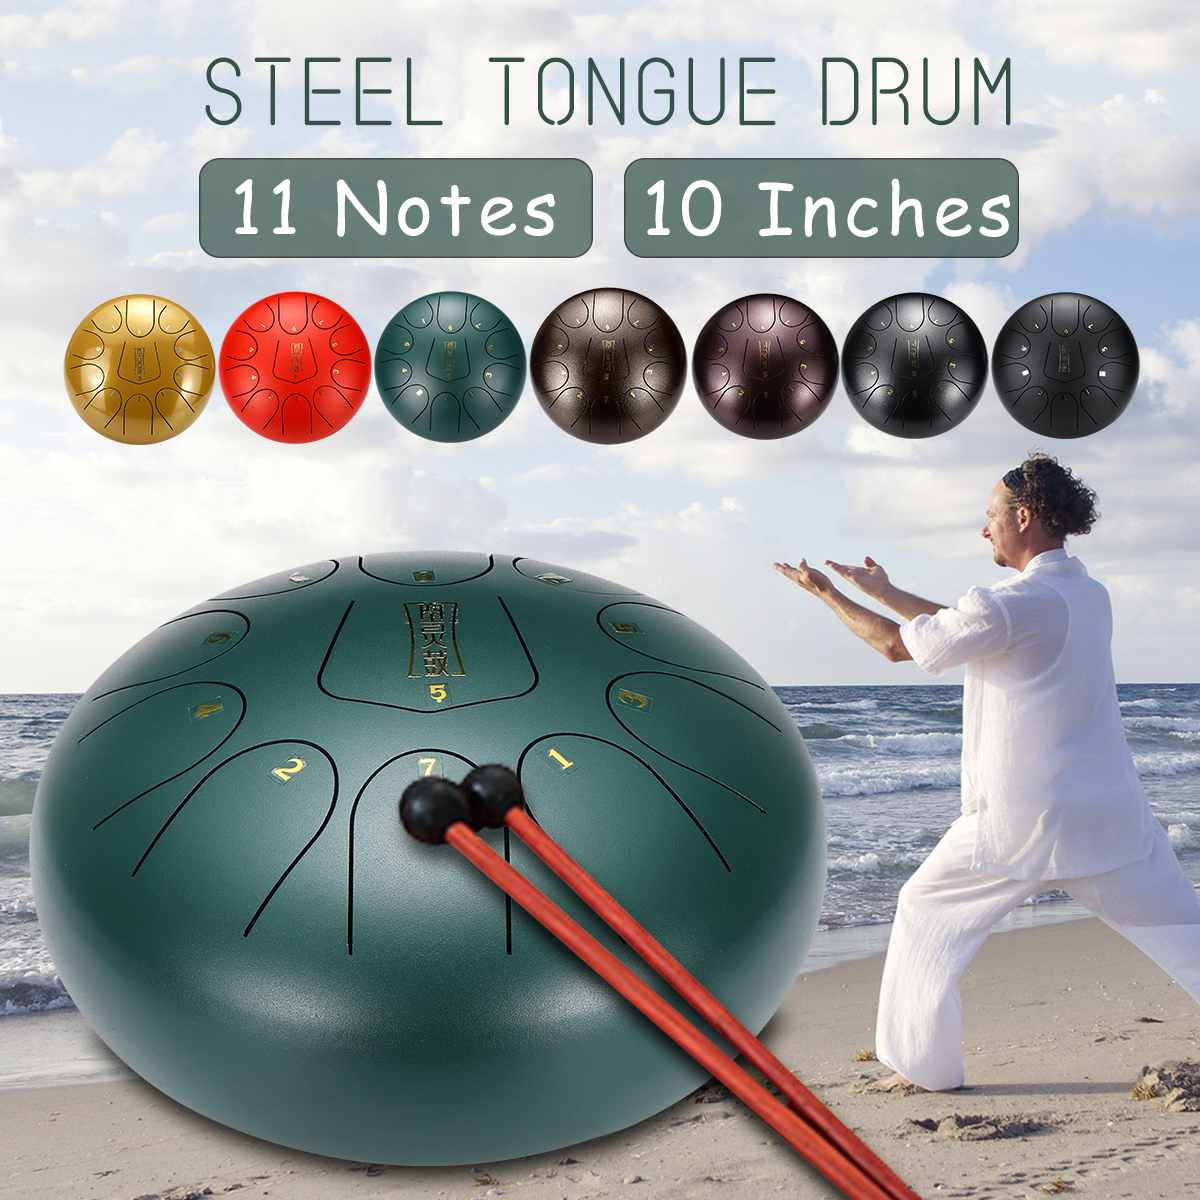 10 Inch 11 Notes D Major Steel Tongue Drum Handpan Hand Tankdrum with Drumsticks with Finger Cots Yoga Meditation Zazen Relax